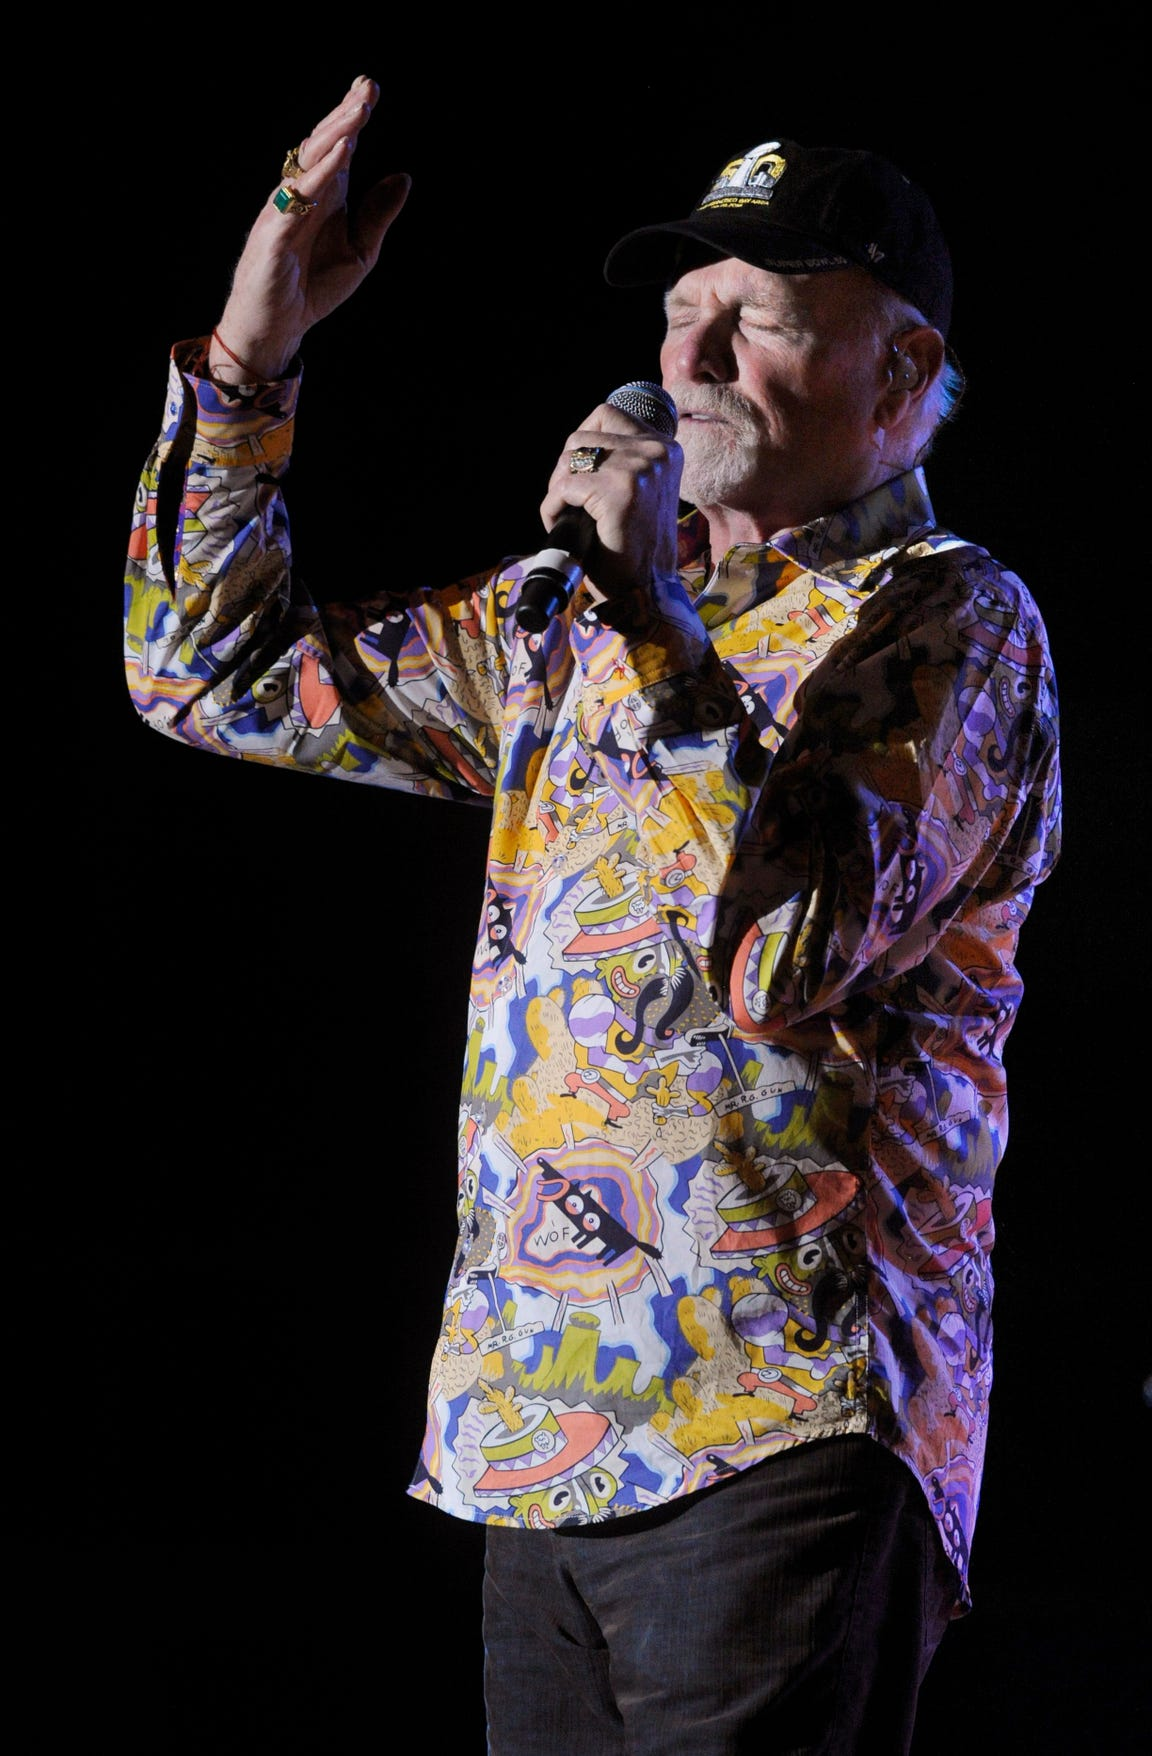 Mike Love of the Beach Boys performs  at the Taylor County Expo Center on March 6, 2016. Love said he enjoys smaller market shows because fans are appreciative and enthusiastic to have the guys in town.